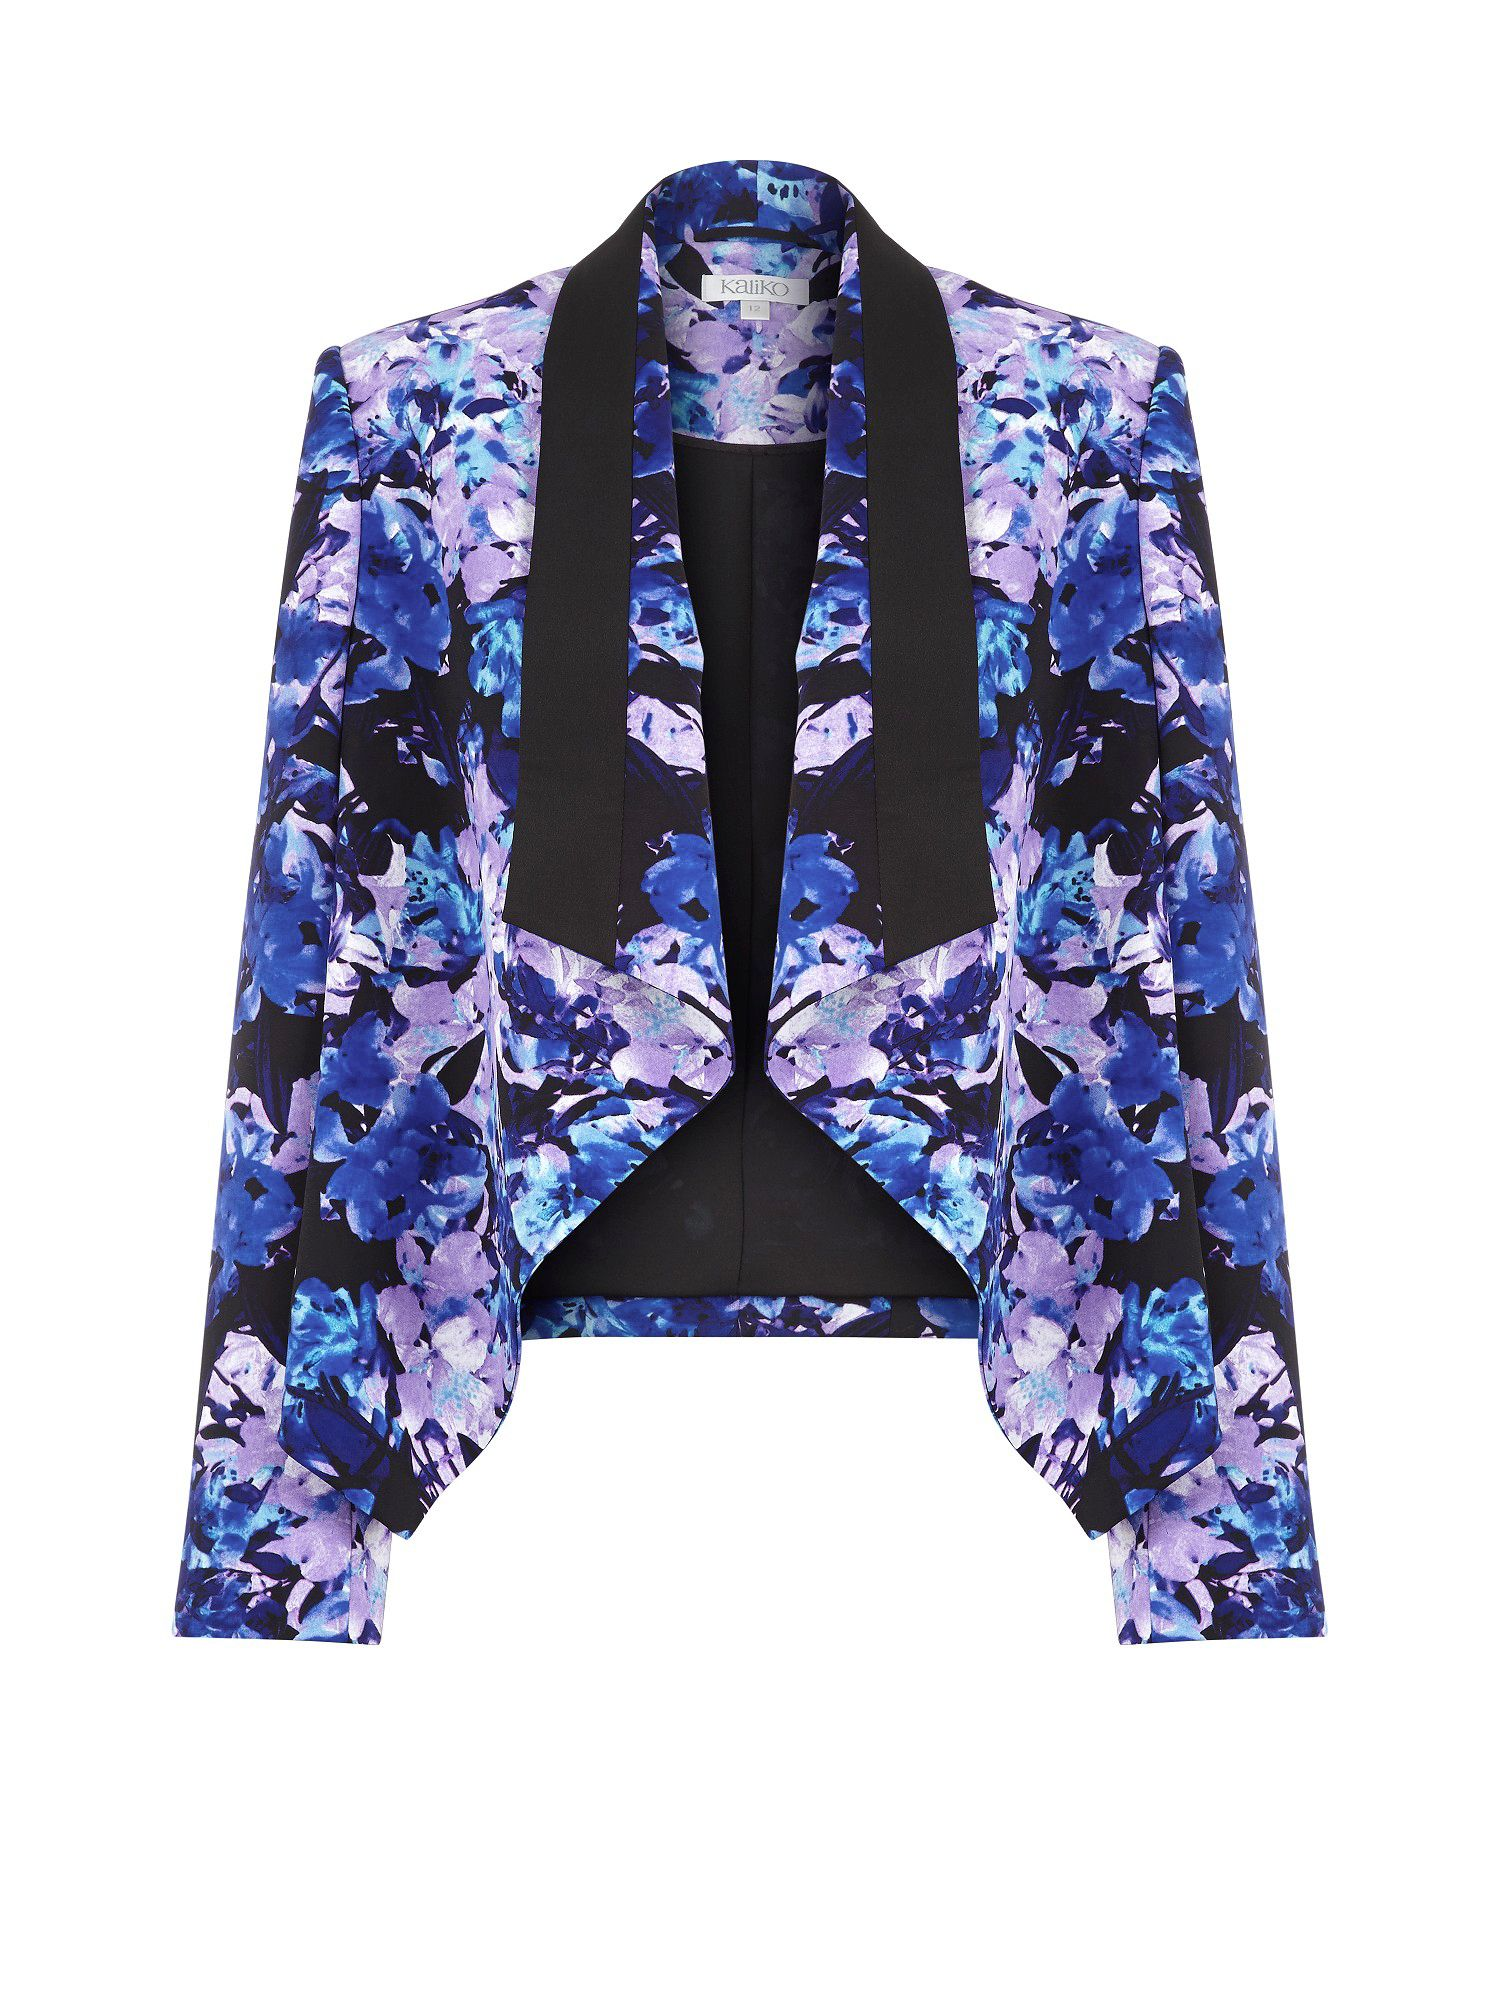 Honour print waterfall jacket